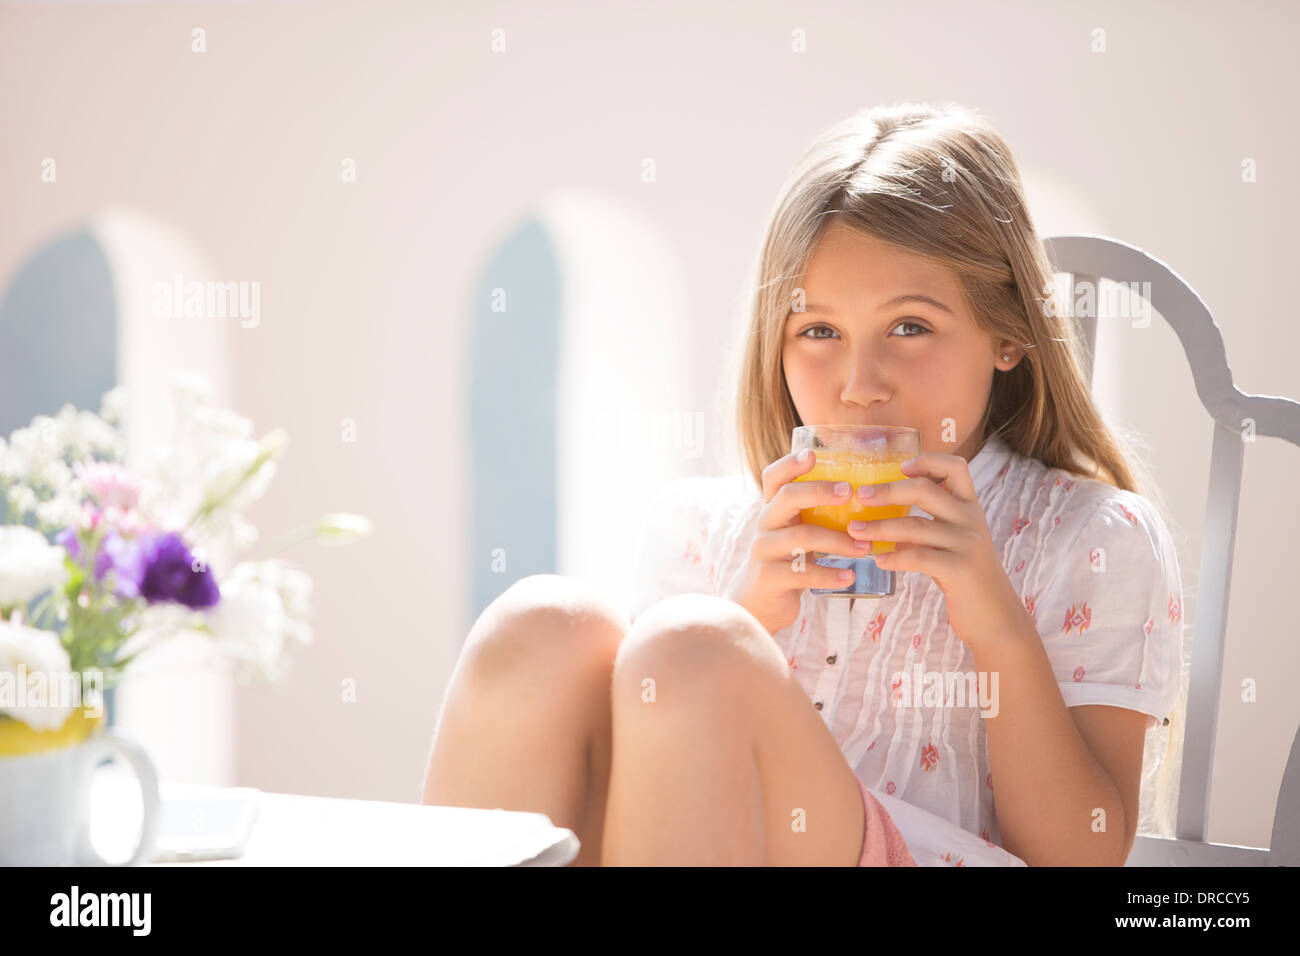 Girl drinking juice at table outdoors - Stock Image